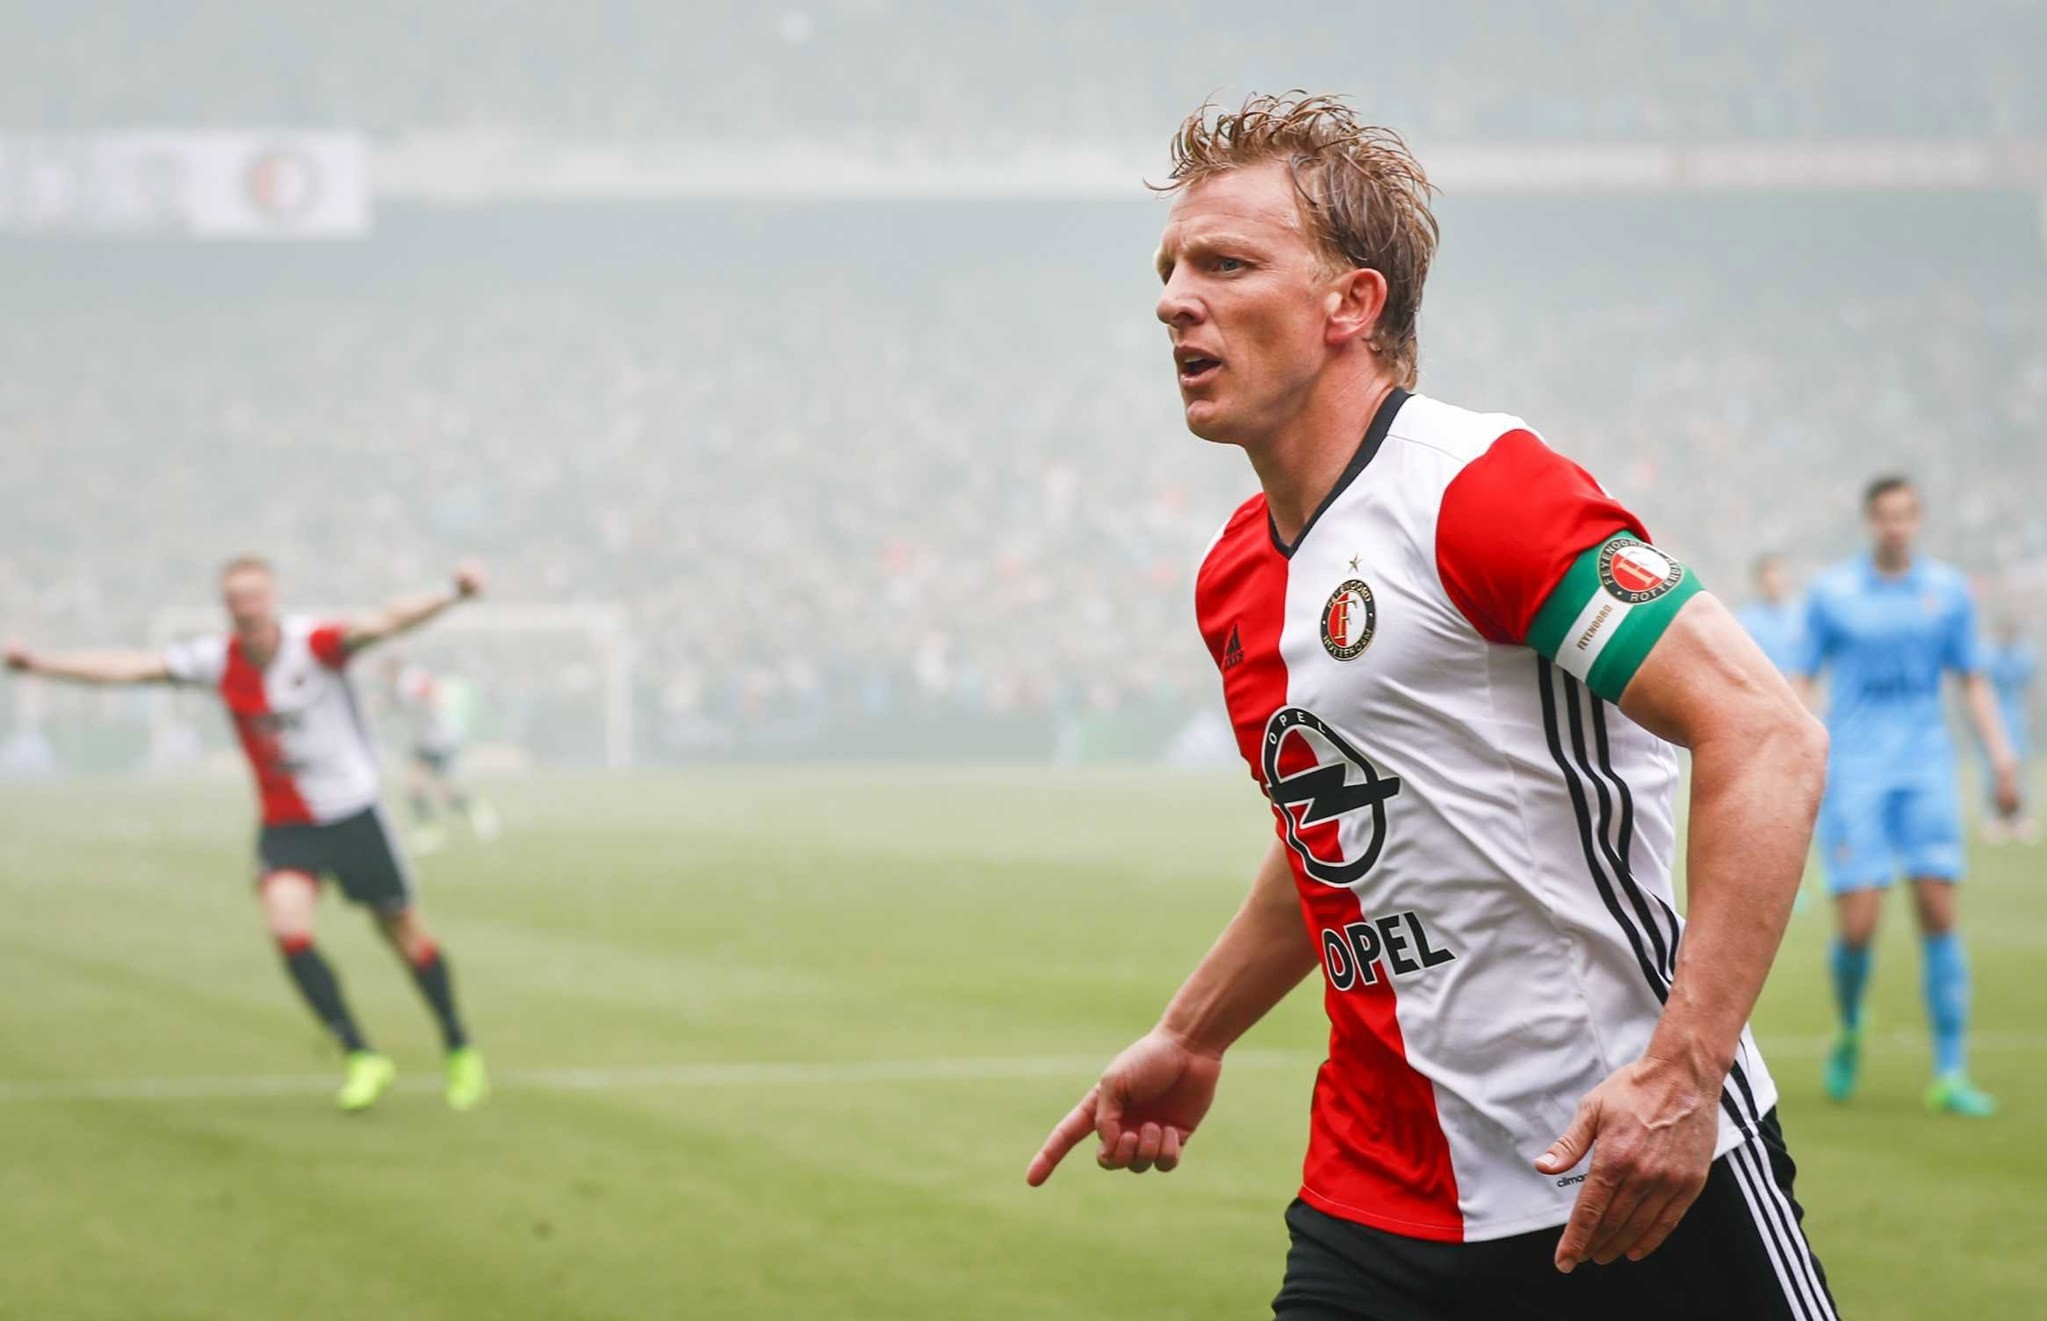 Feyenoord's Dirk Kuyt celebrates after scoring a goal during the Dutch Eredivisie match between Feyenoord Rotterdam and Heracles Almelo, 14 May 2017. (EPA Photo)